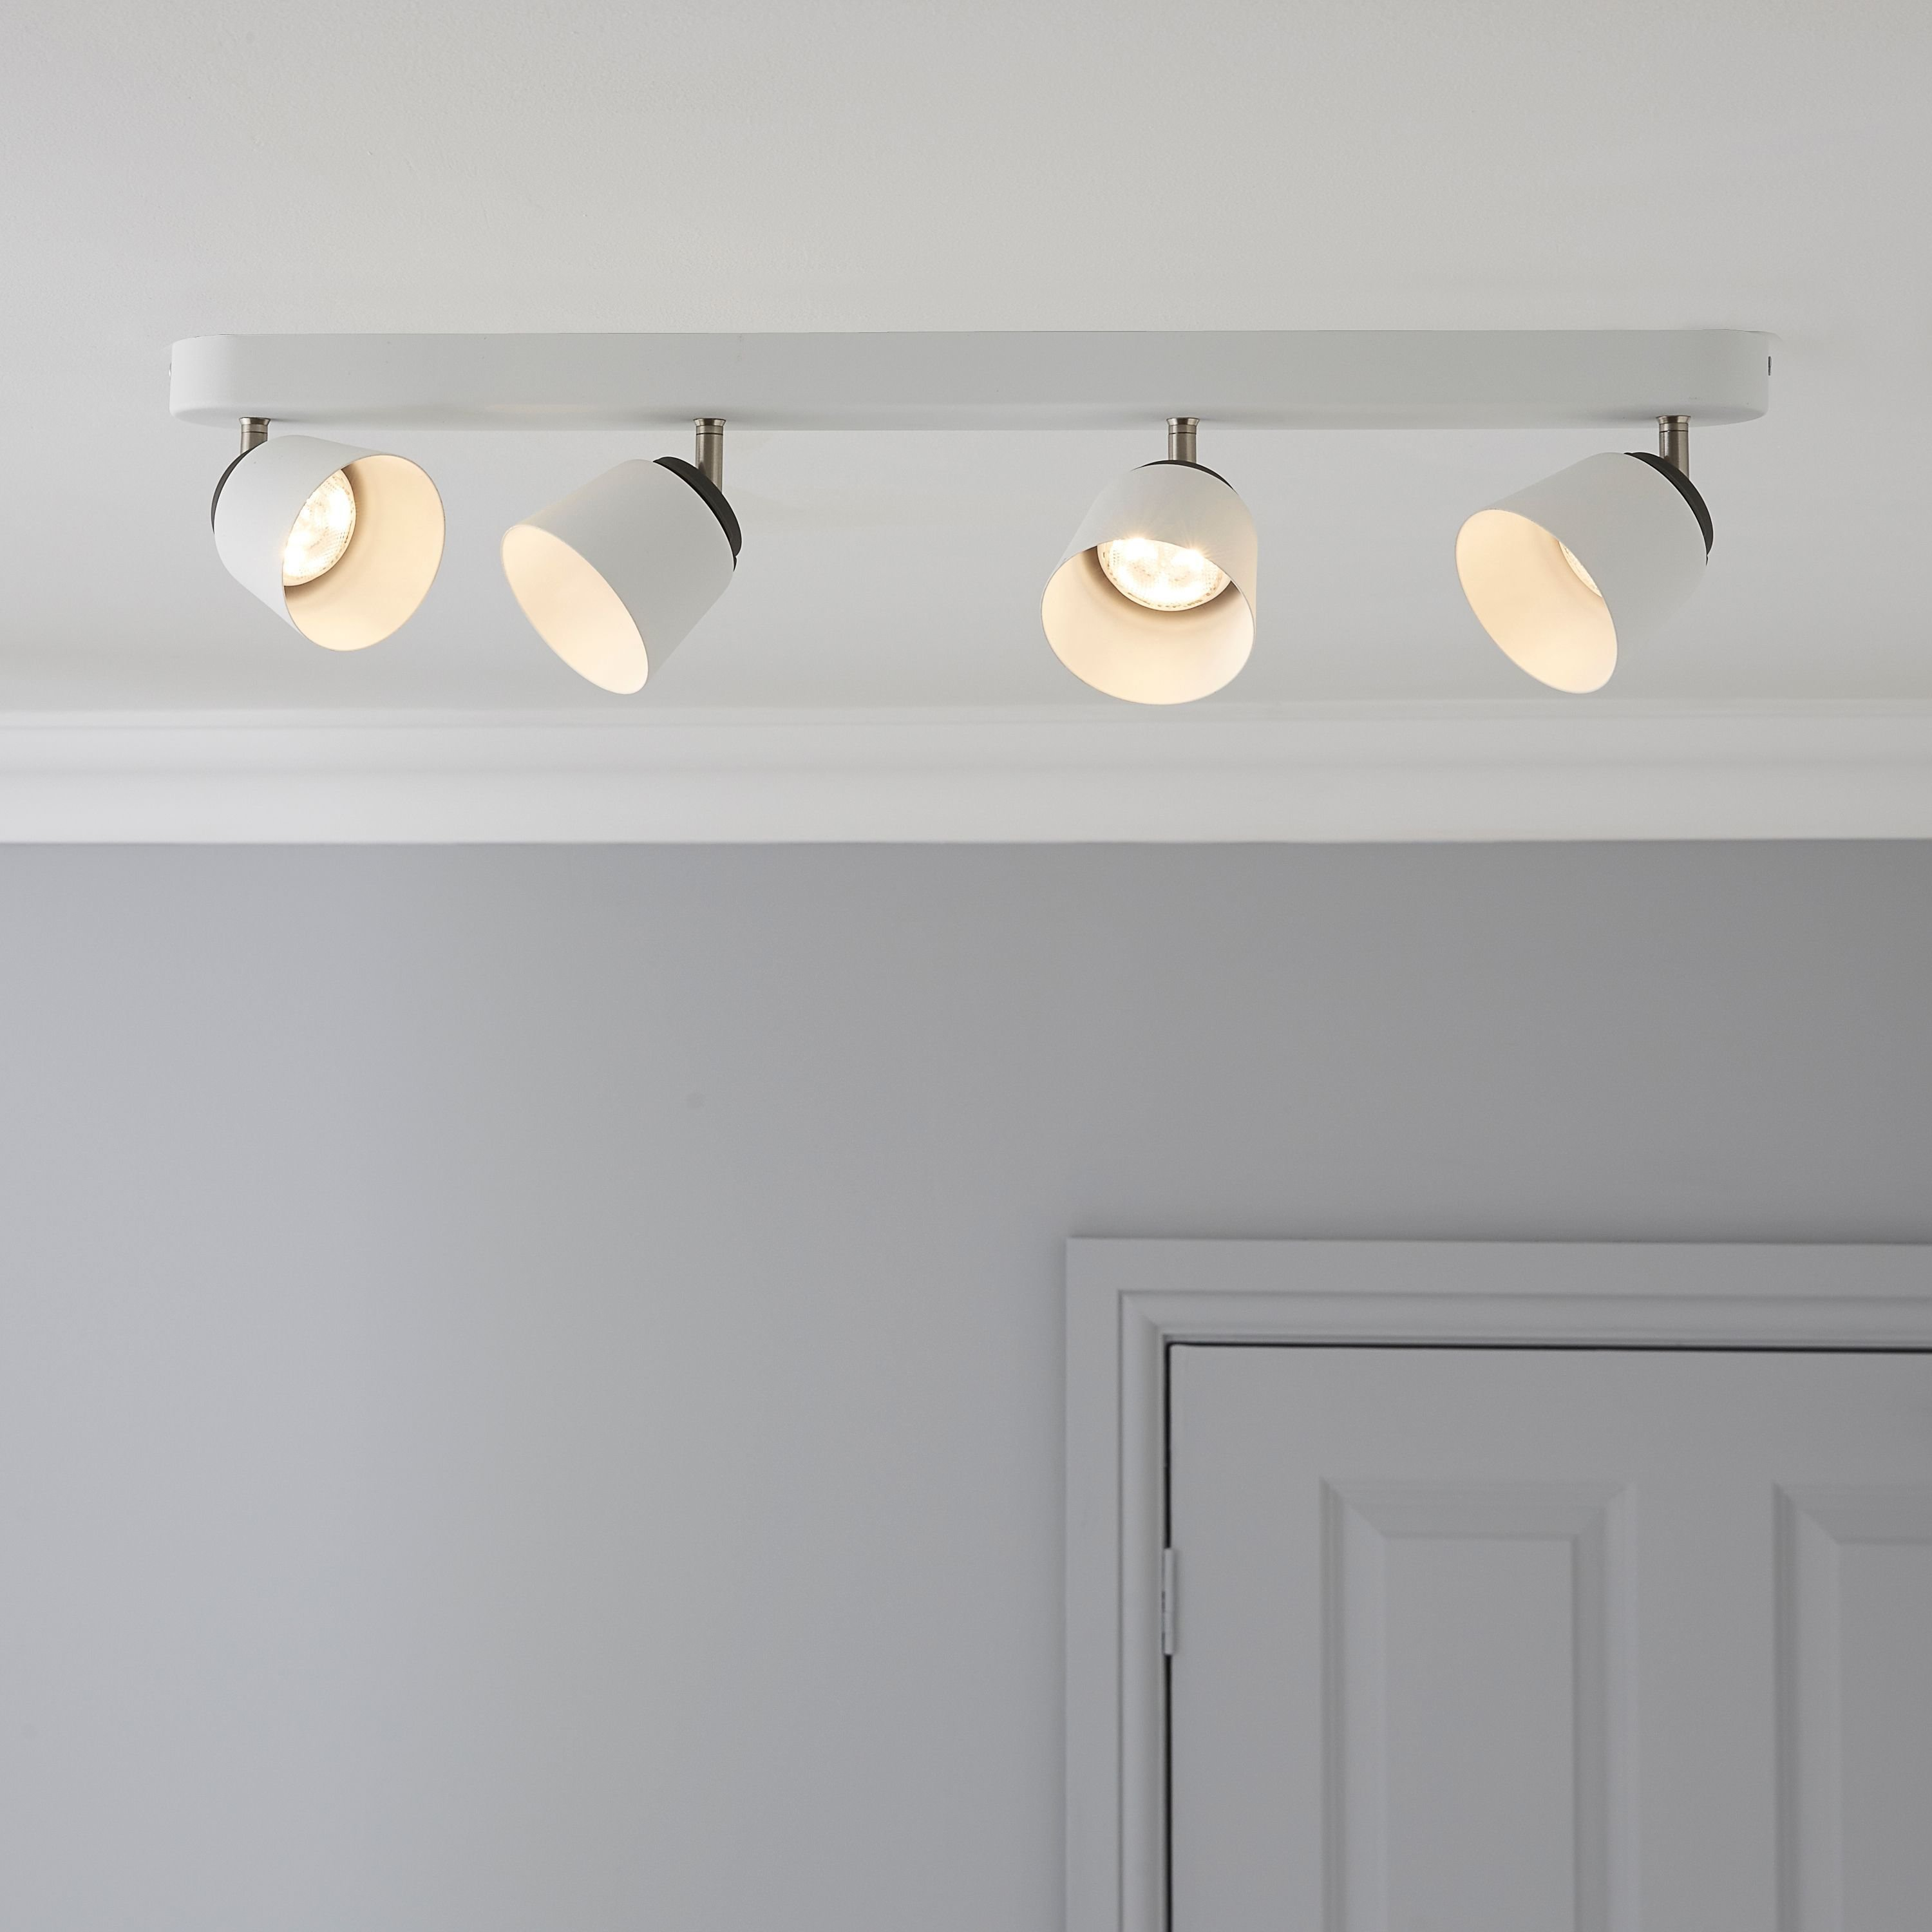 Best Dender County White 4 Lamp Ceiling Spotlight Bar Departments Diy At B Q Lights In 2019 With Pictures